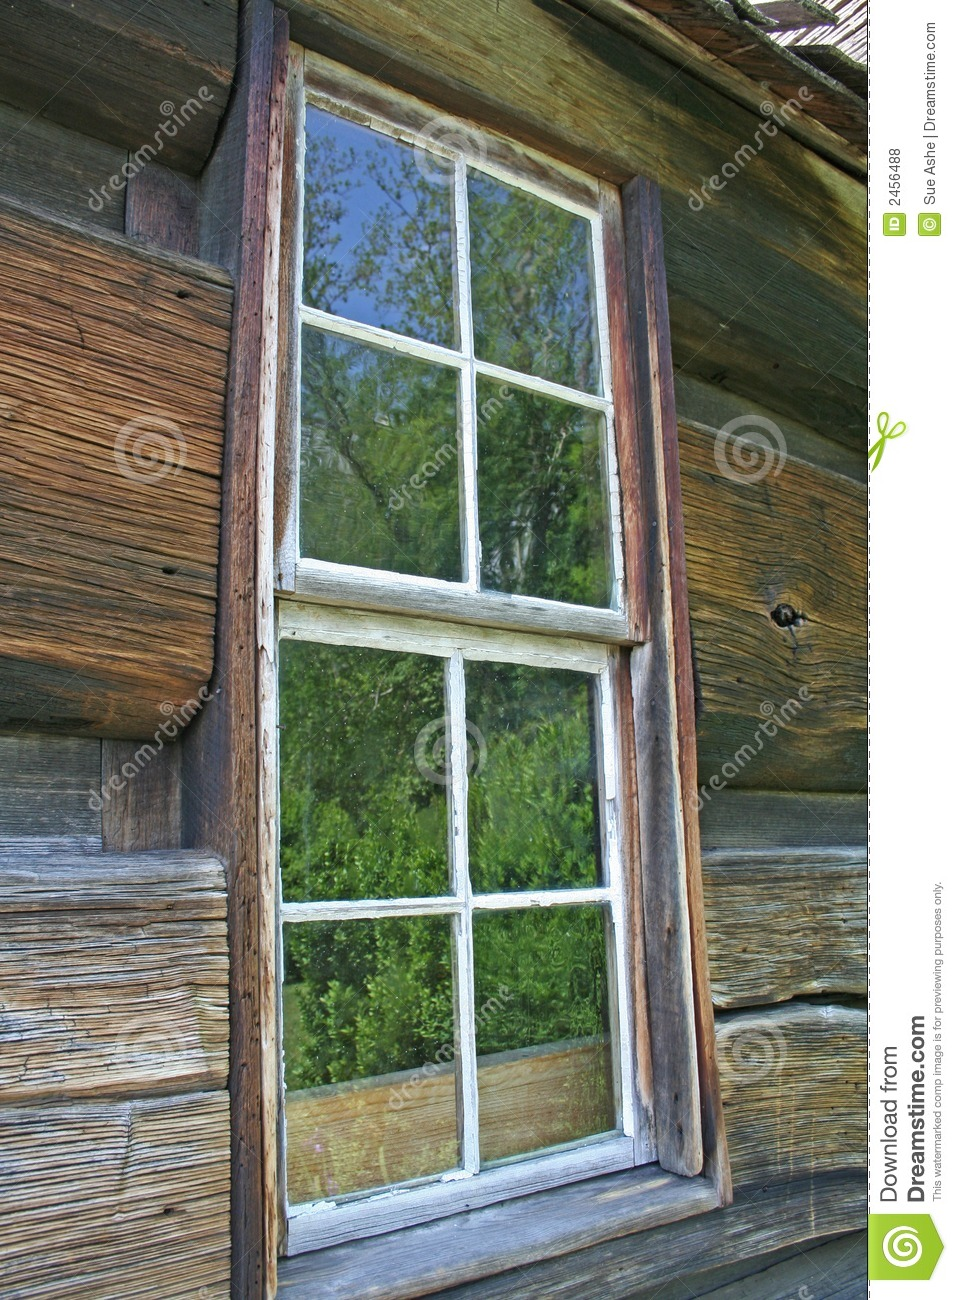 Log cabin window stock photo image of exterior shelter for Log home windows